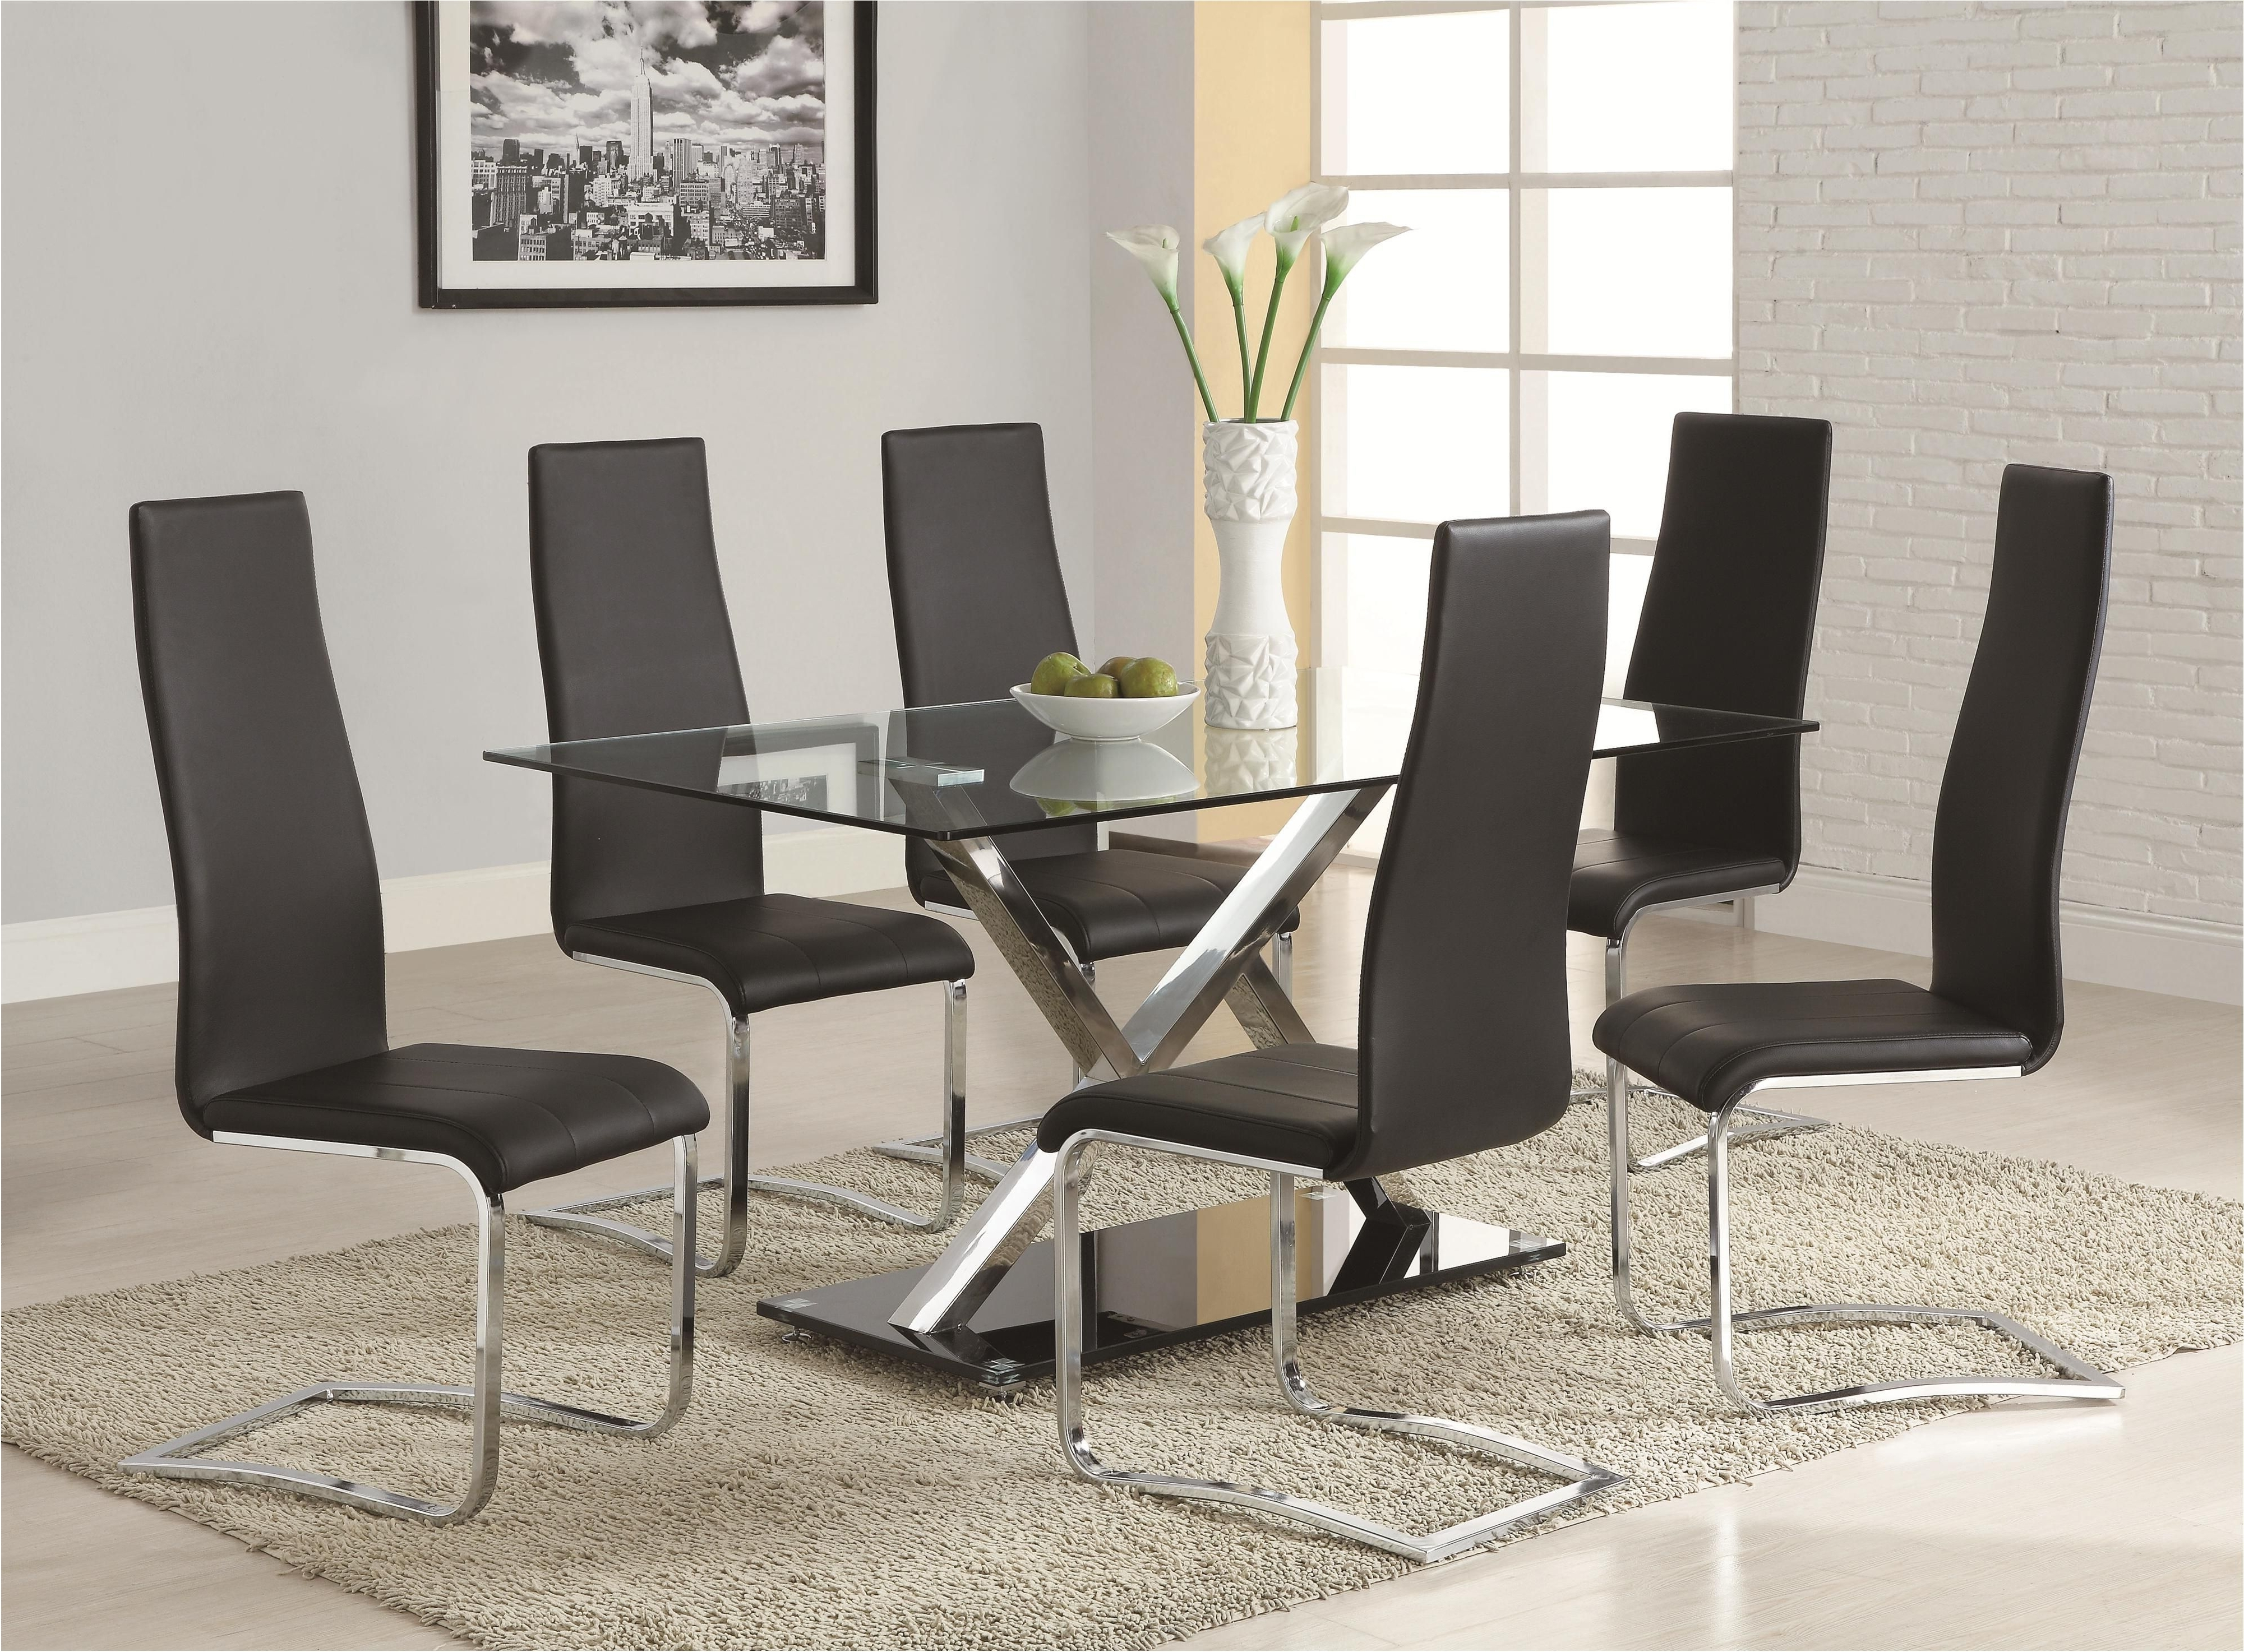 Most Recently Released Contemporary Dining Tables Sets Within Best Alluring Modern Dining Table 11 Kitchen Room Sets Sale Small (View 4 of 25)